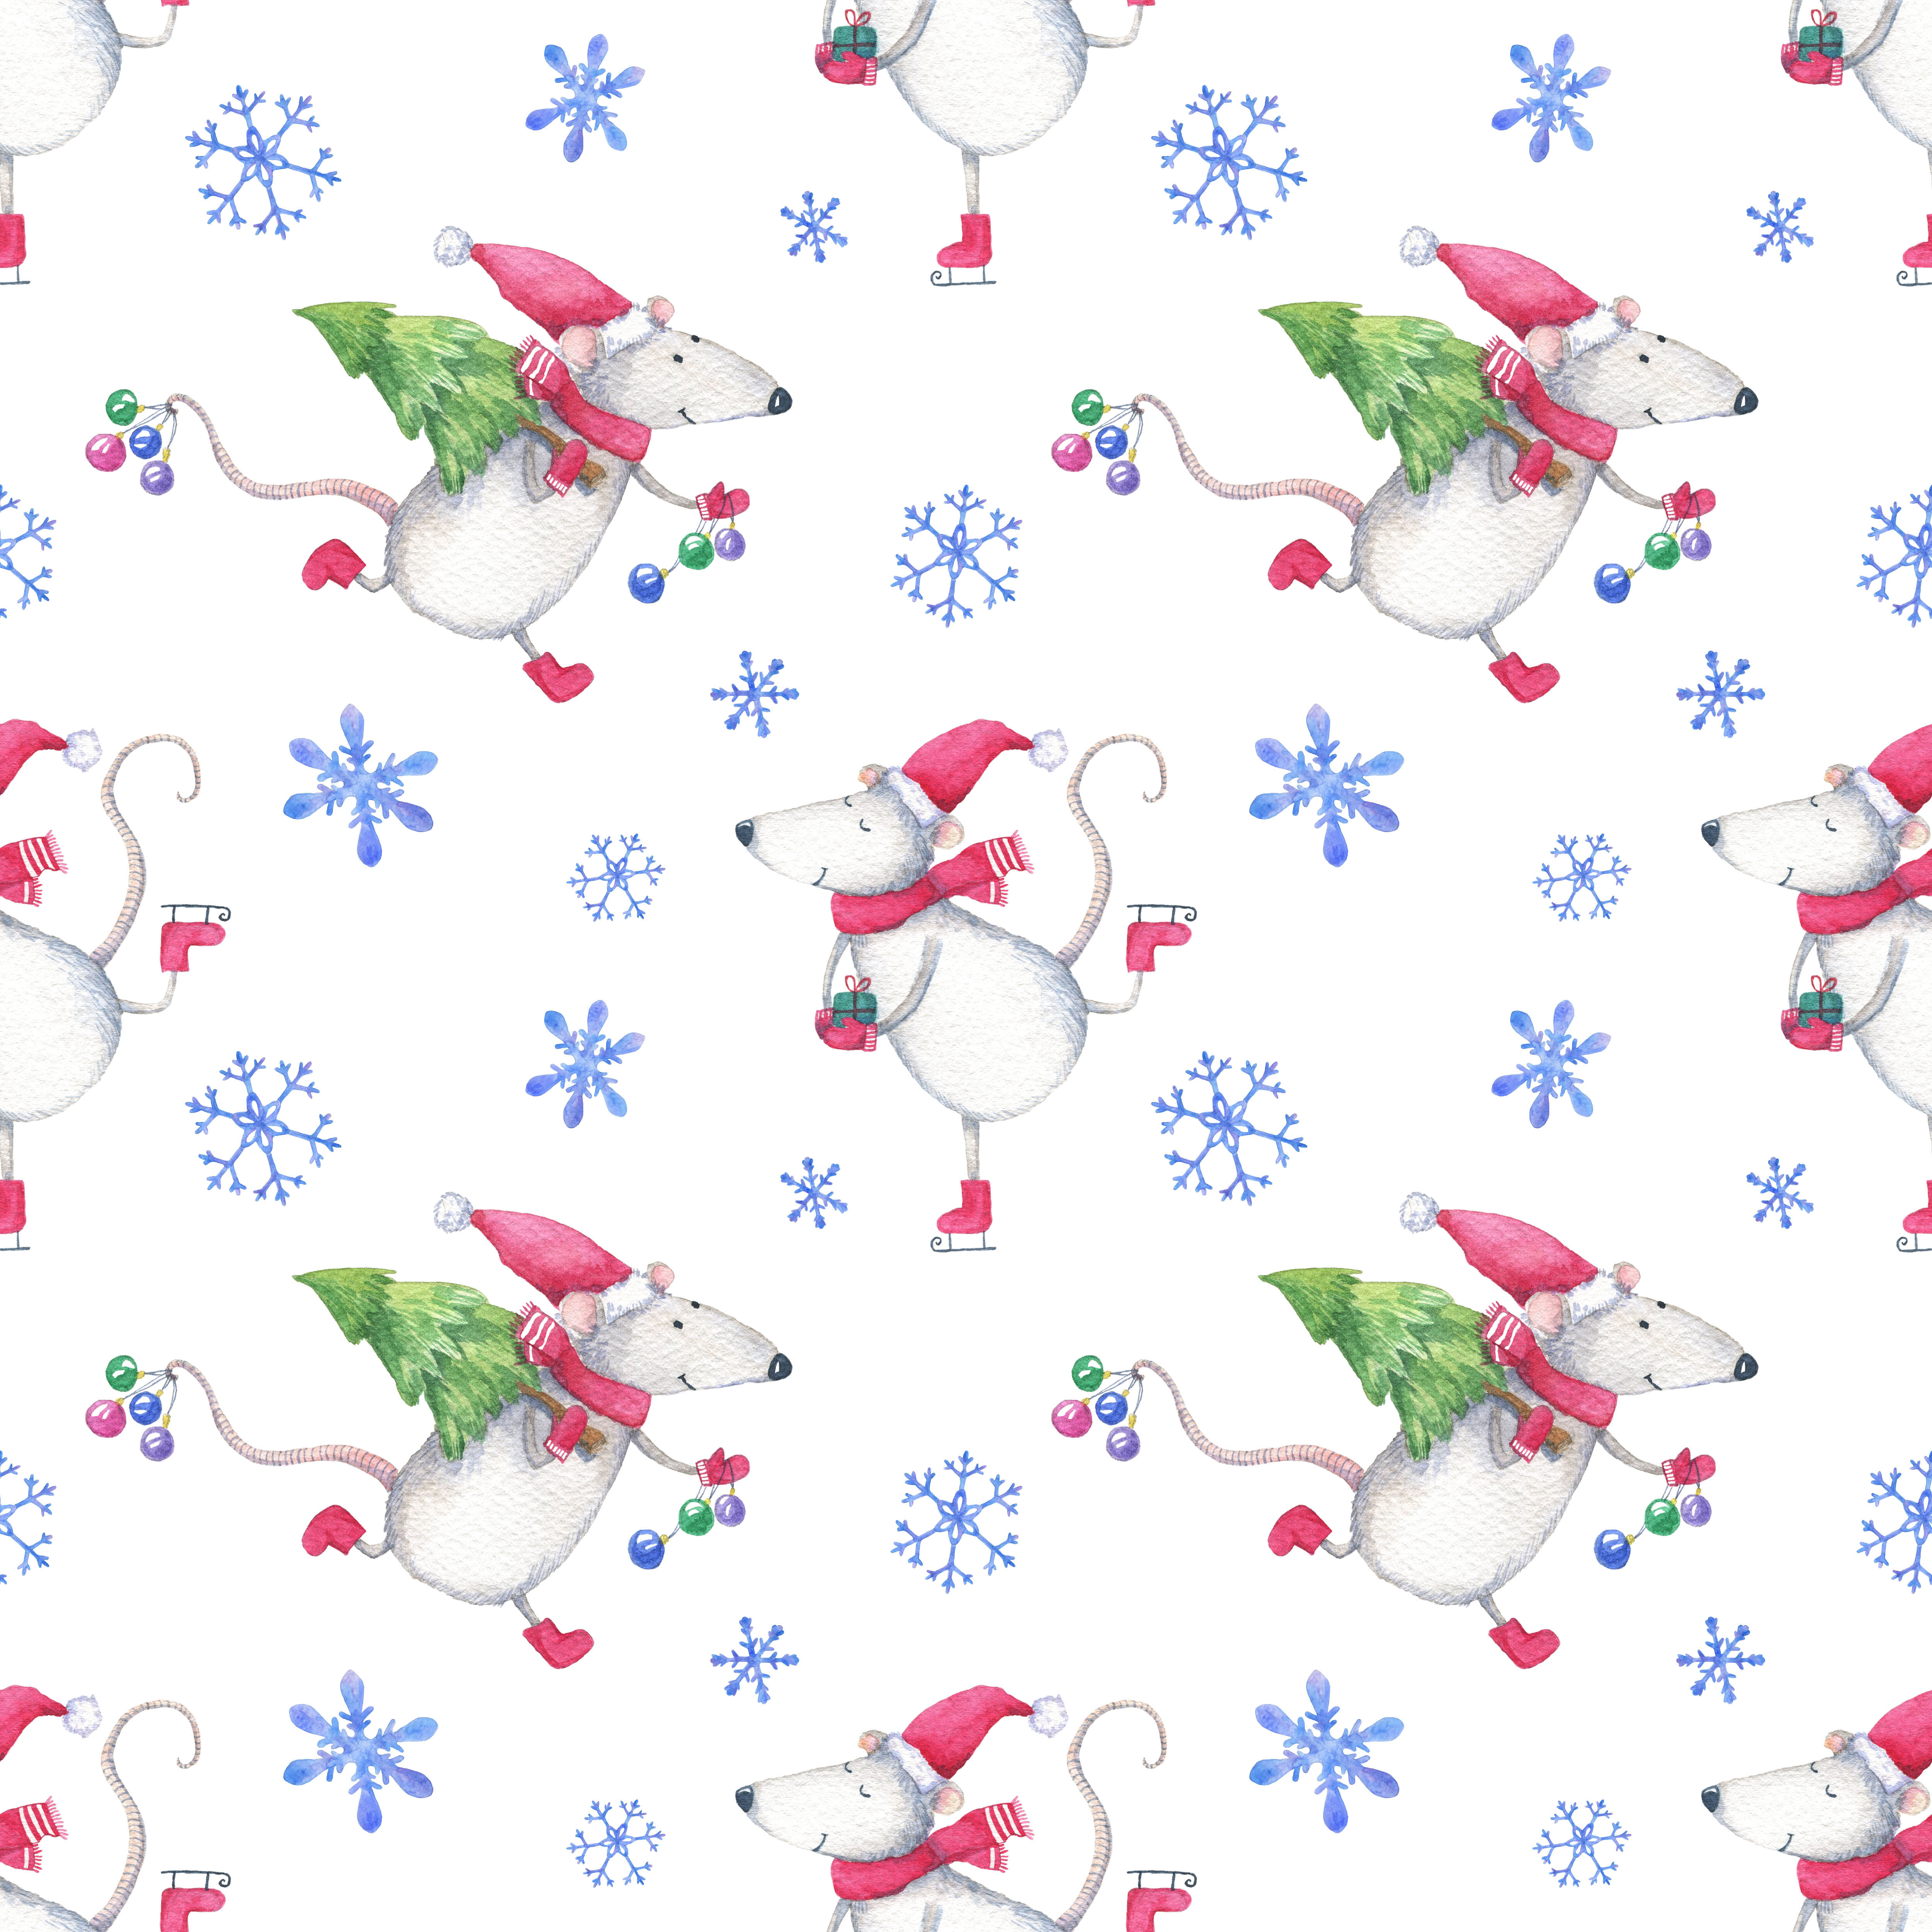 Watercolor New Year Christmas Seamless Pattern With Happy Mice By